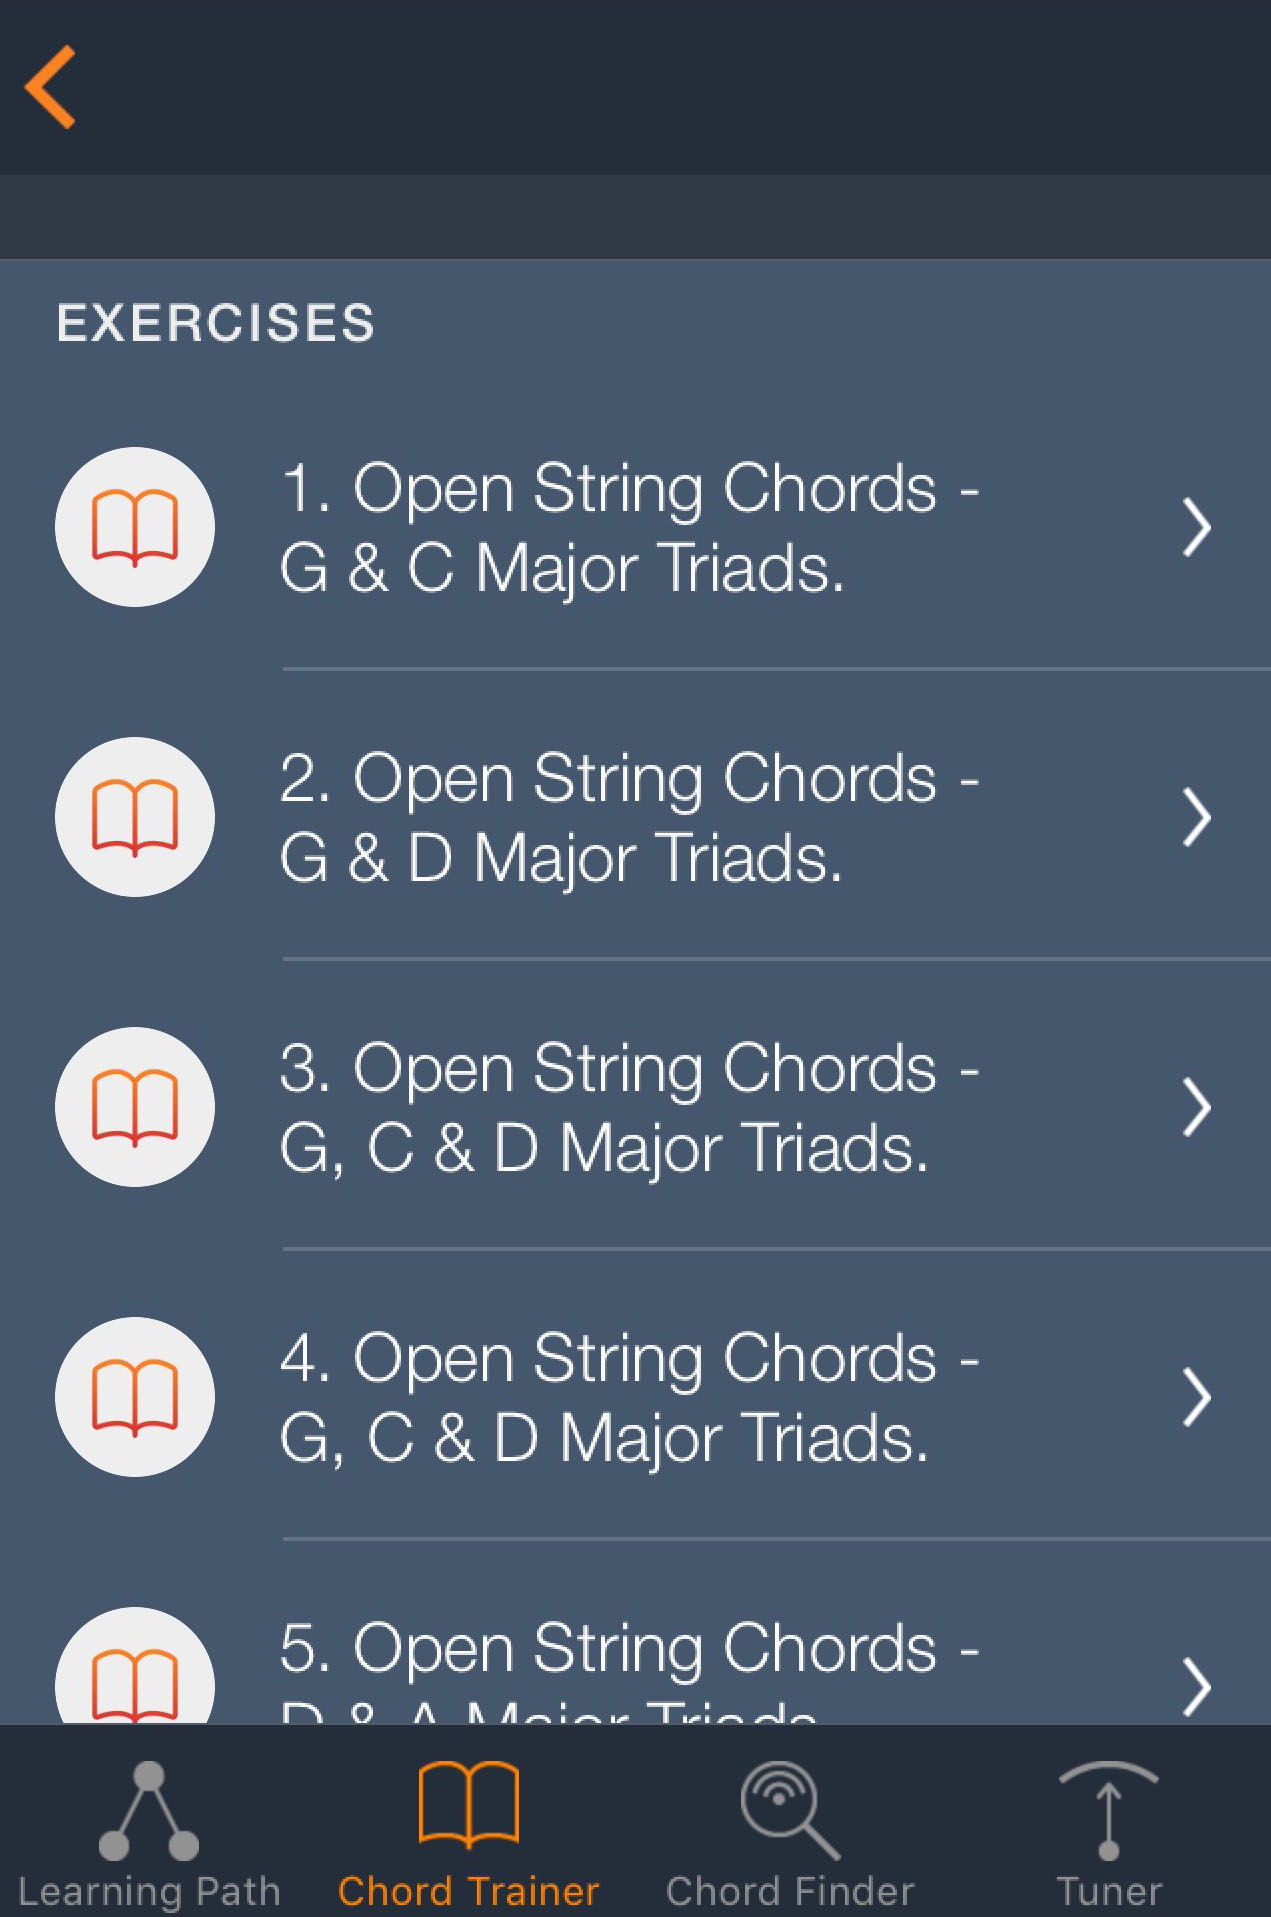 Uberchord guitar review free guitar tuition app with chord the exercises start simple but progress to some quite tricky stuff eventually hexwebz Images